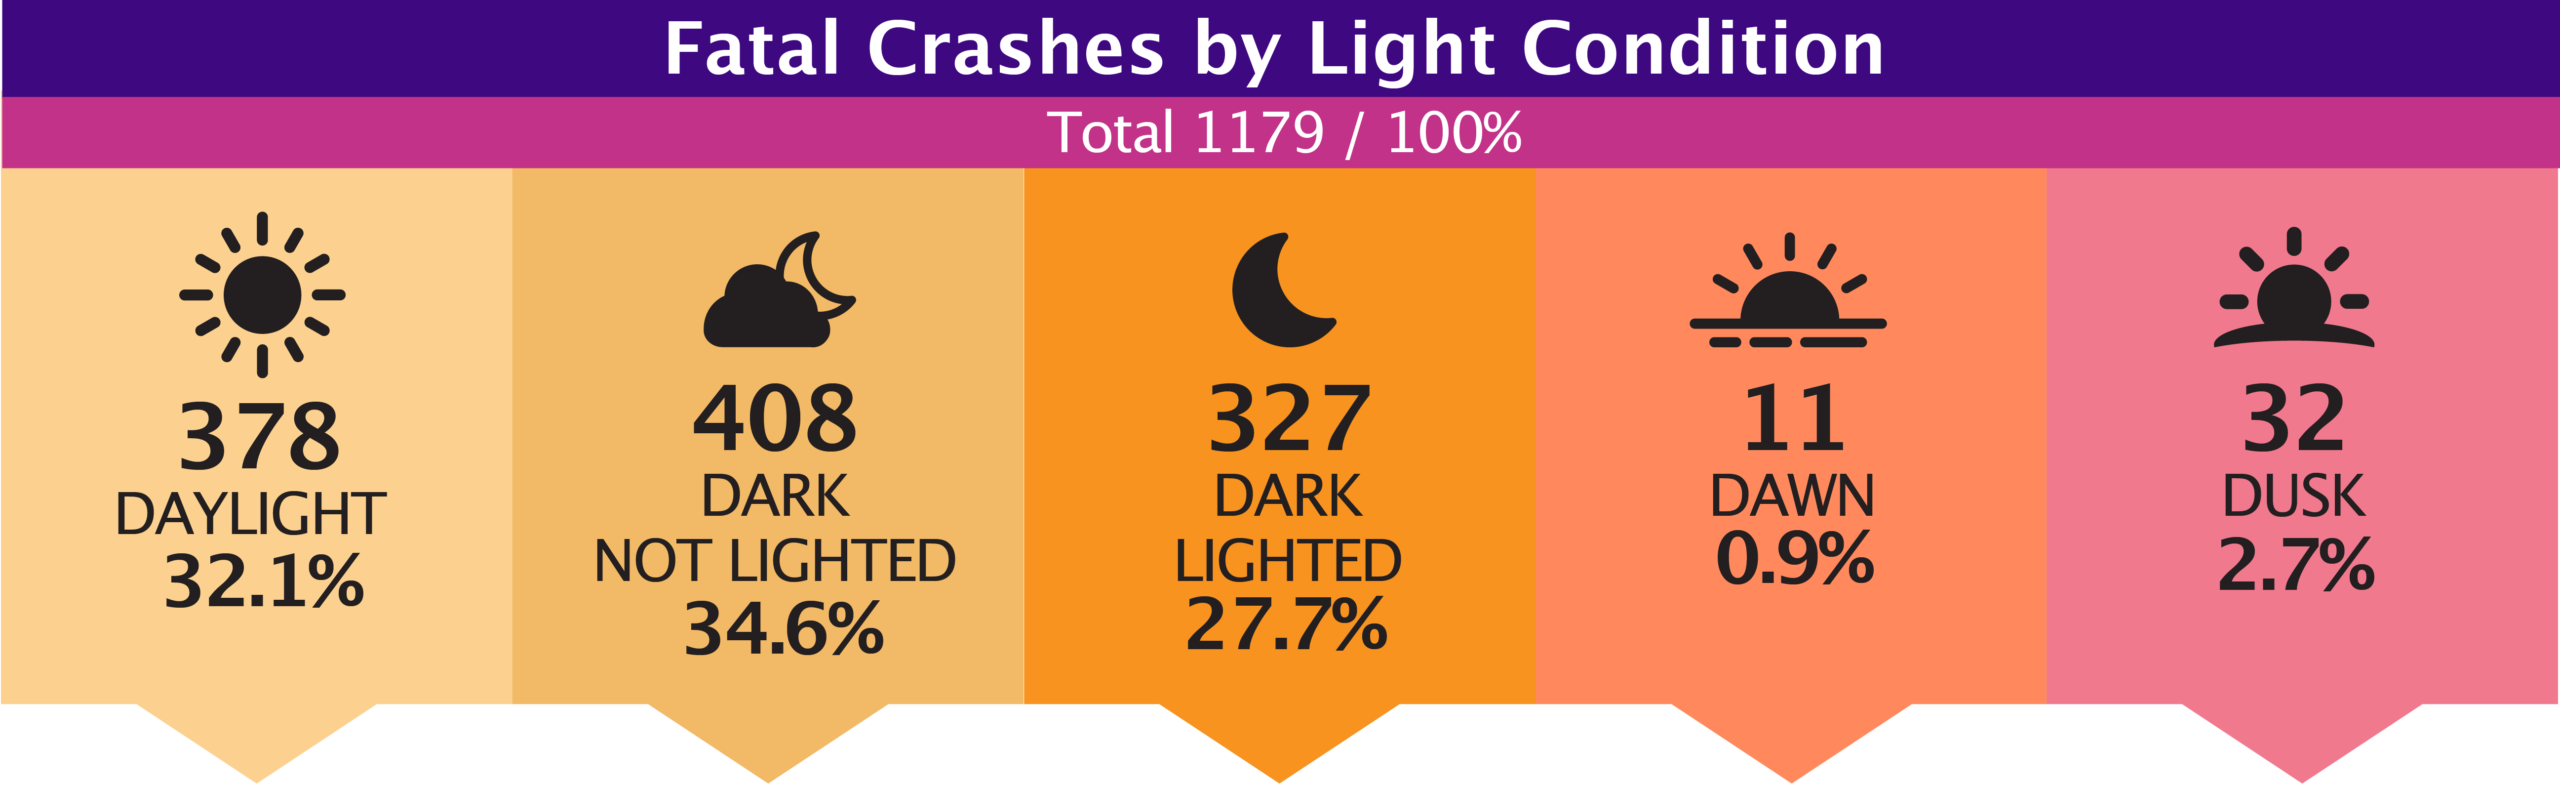 Fatal Crashes by Light Condition